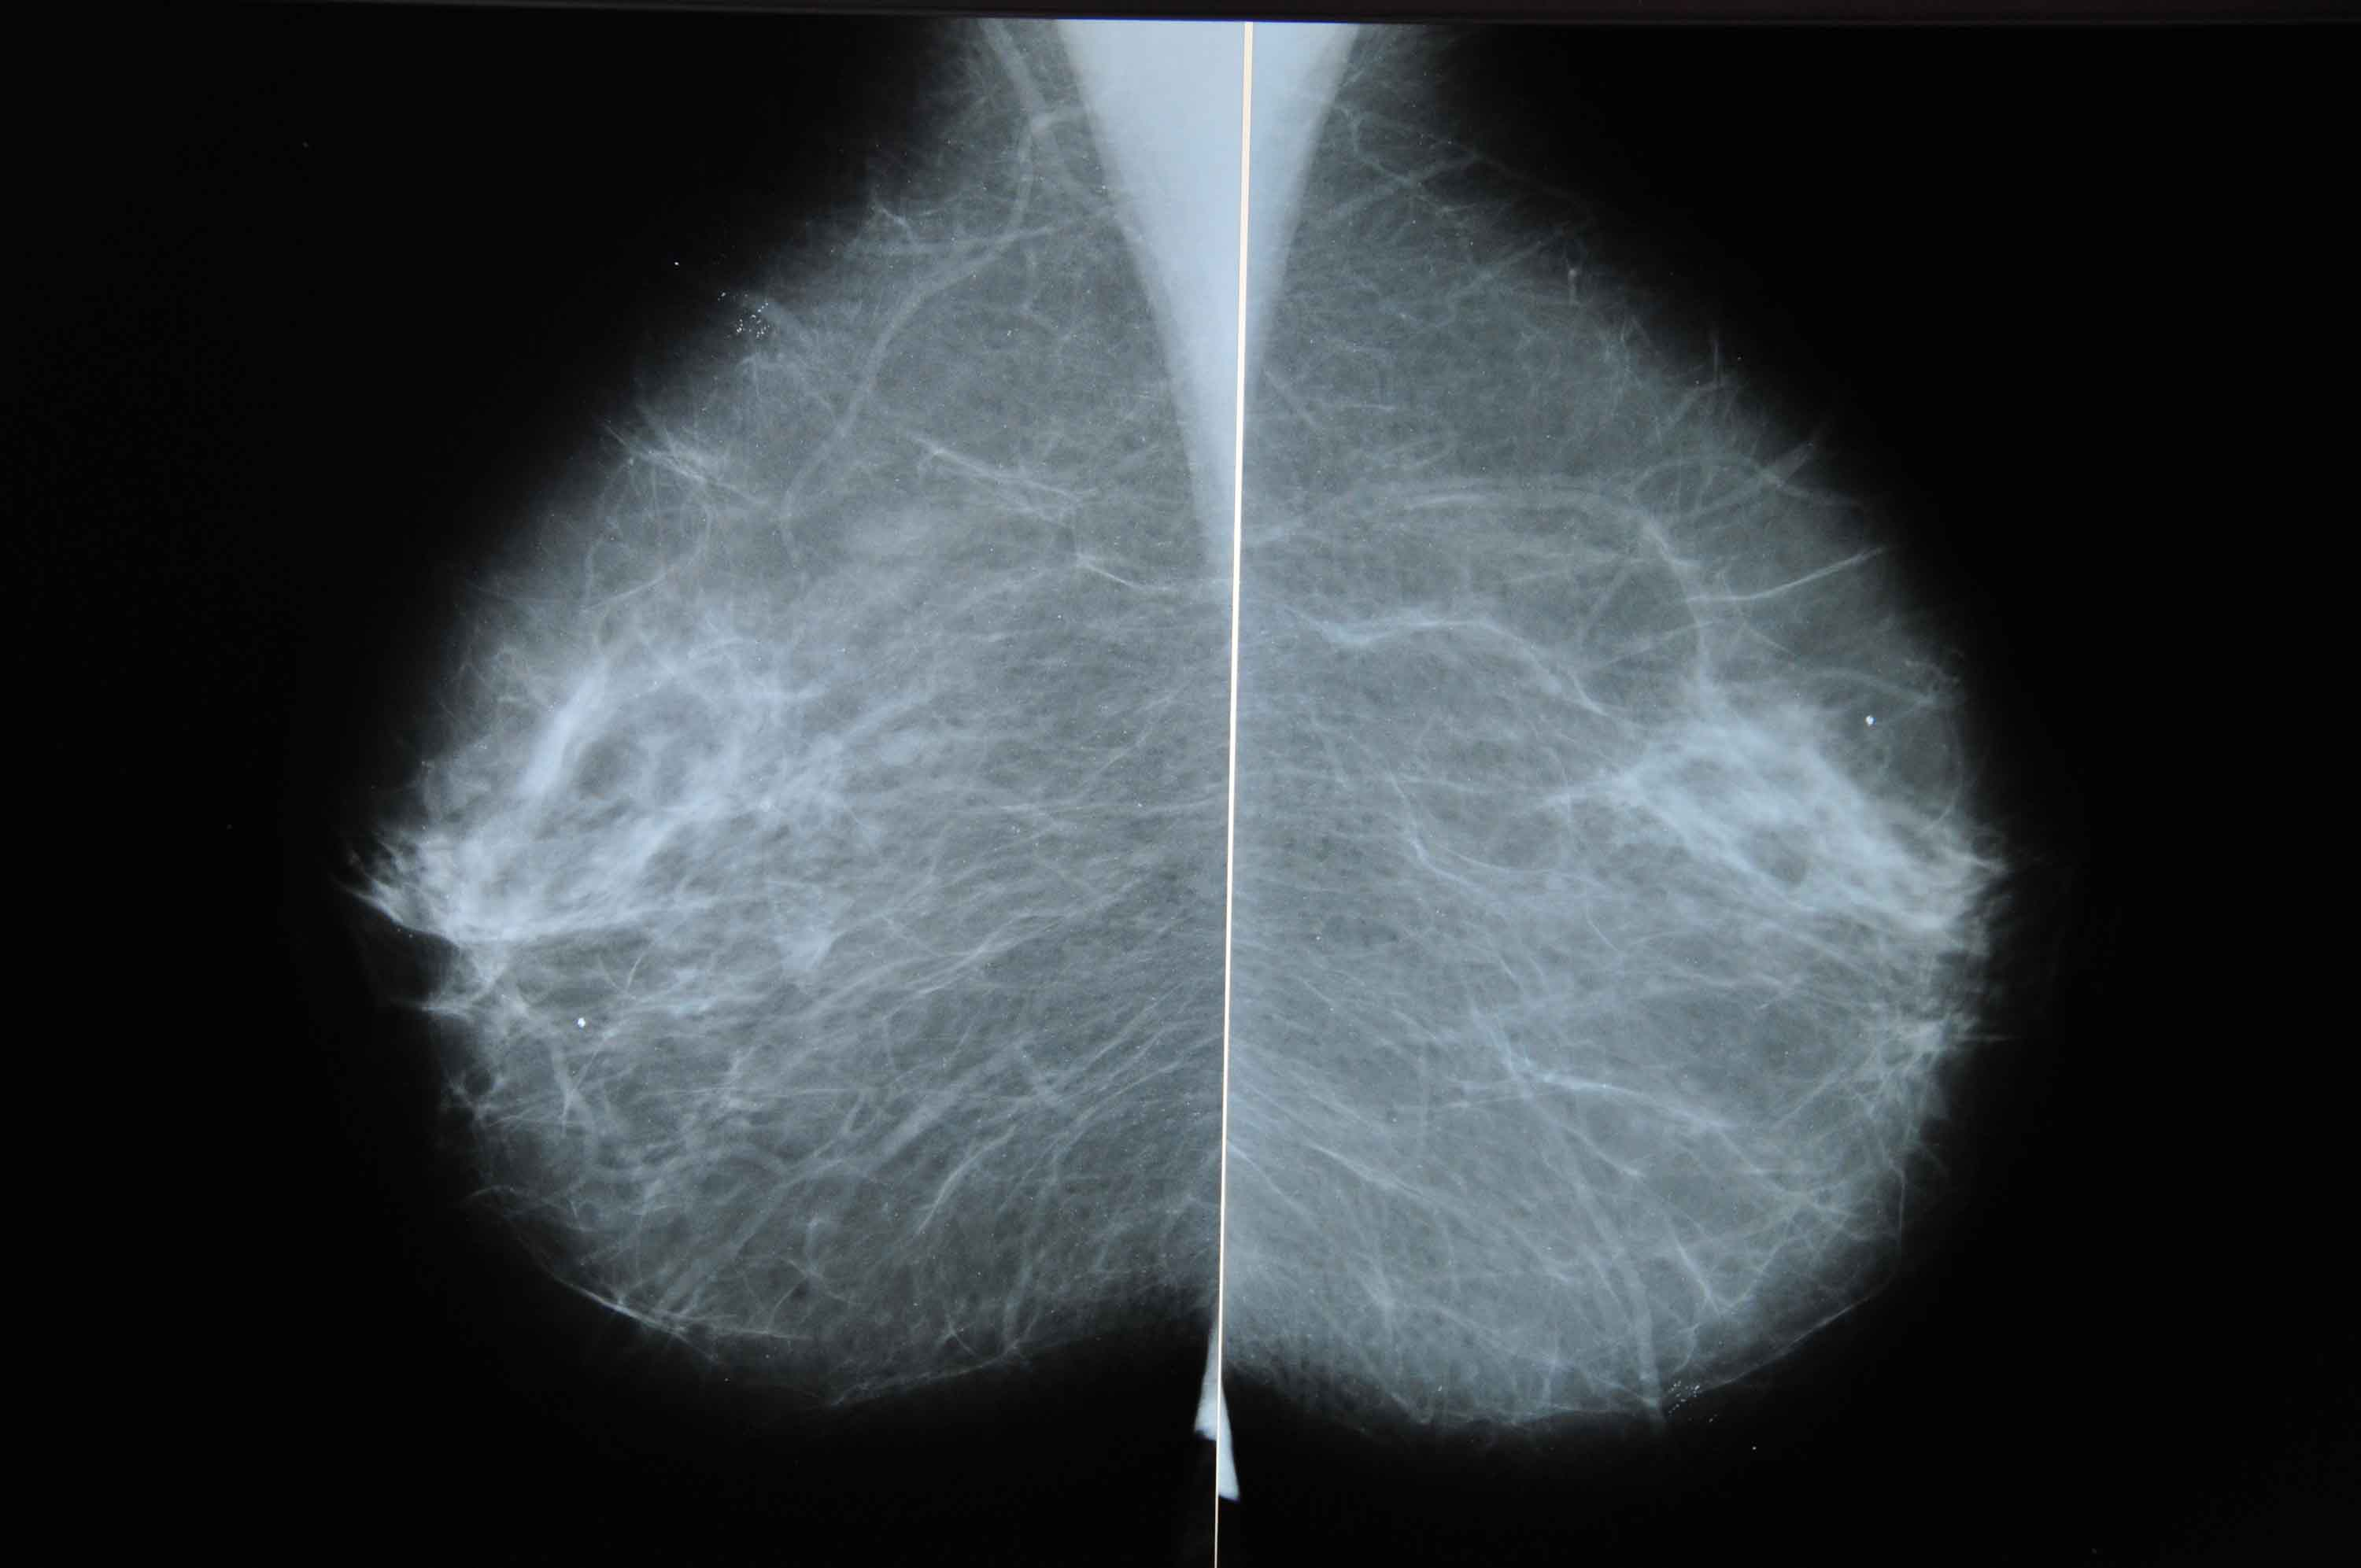 Mammograms pick up swelling due to Covid-19 vaccine, causing unnecessary fear, radiologists say